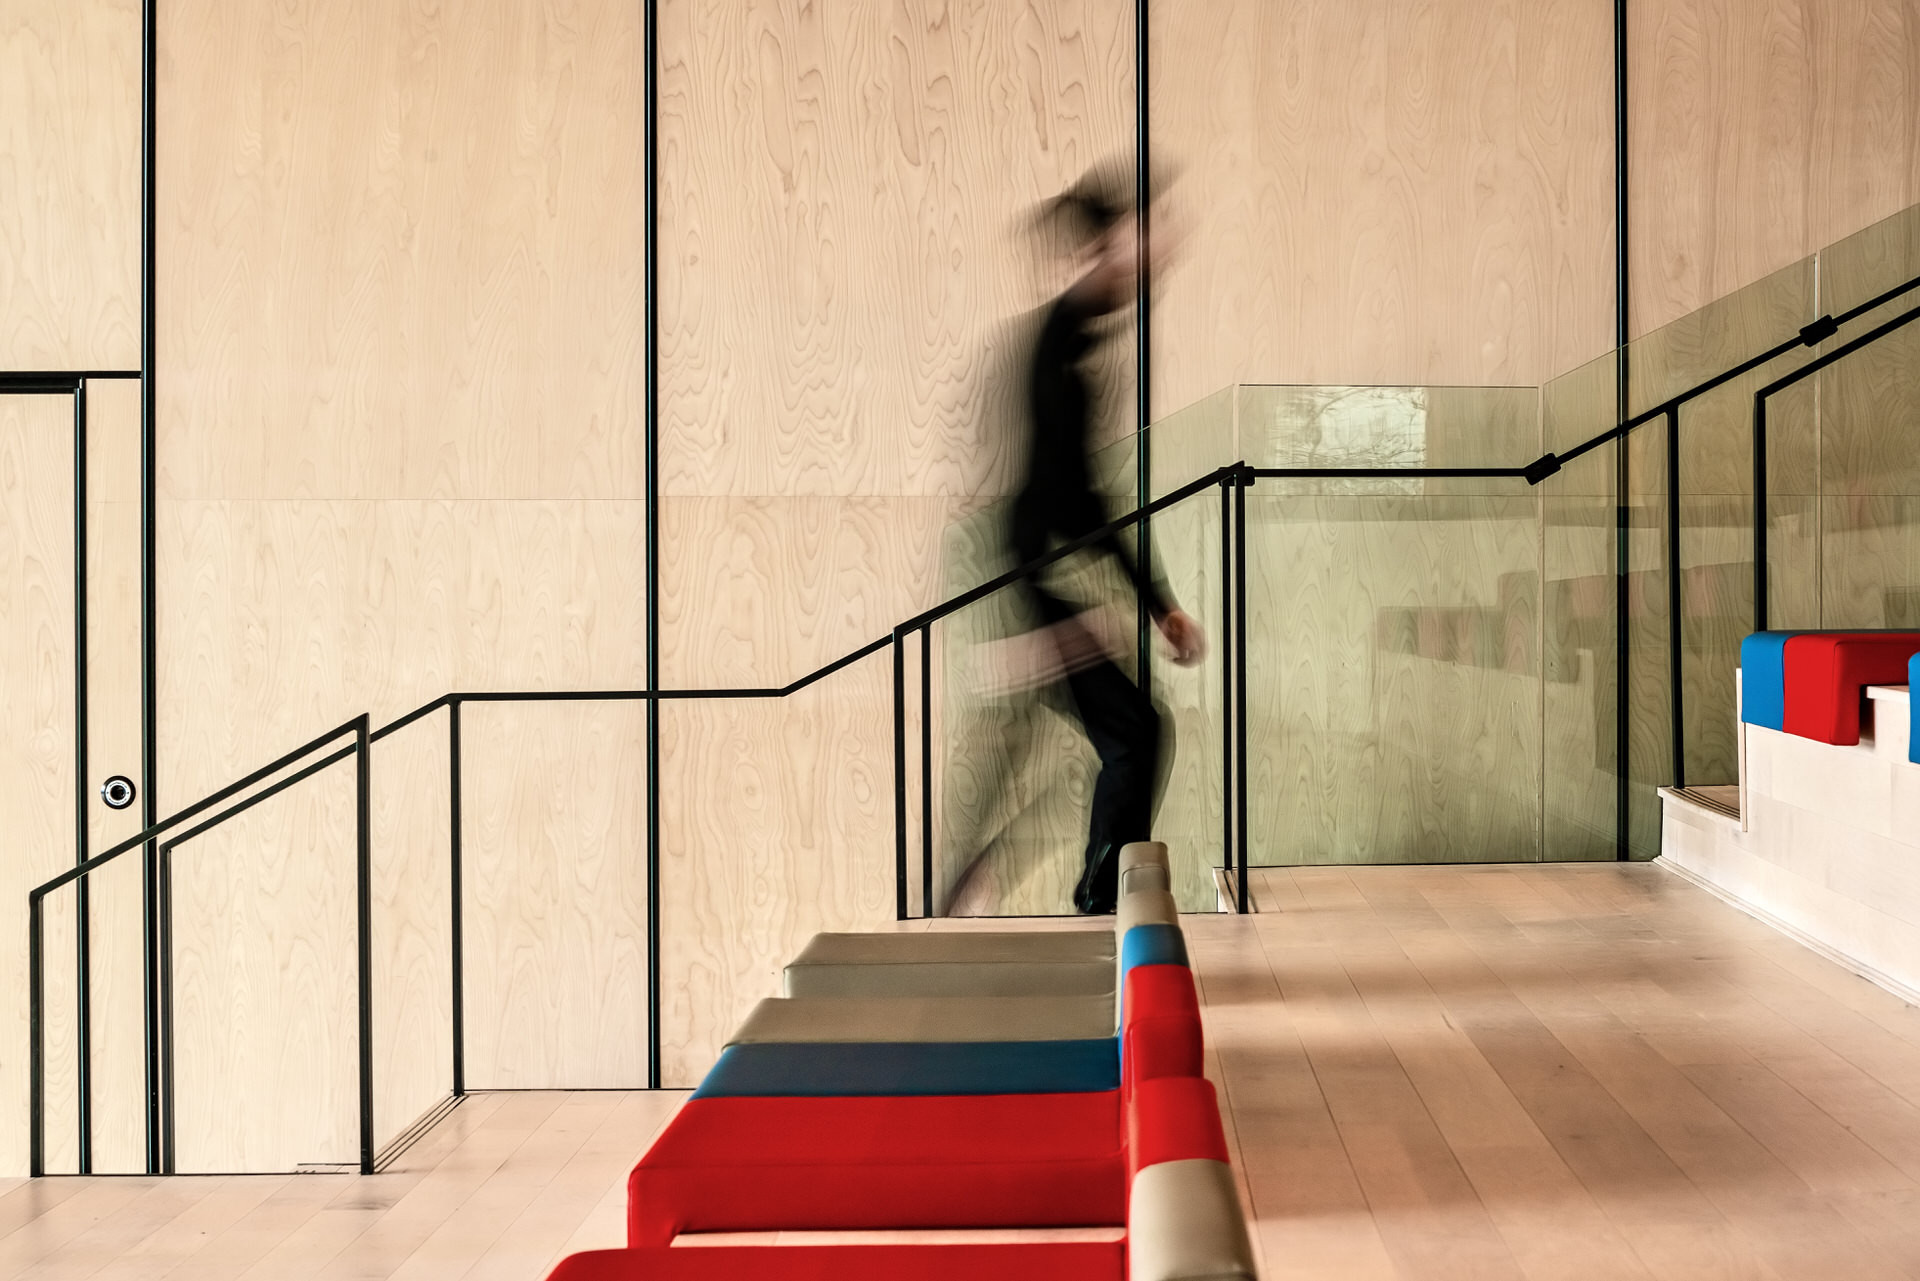 Person using stairs inside the Centre at the Forks